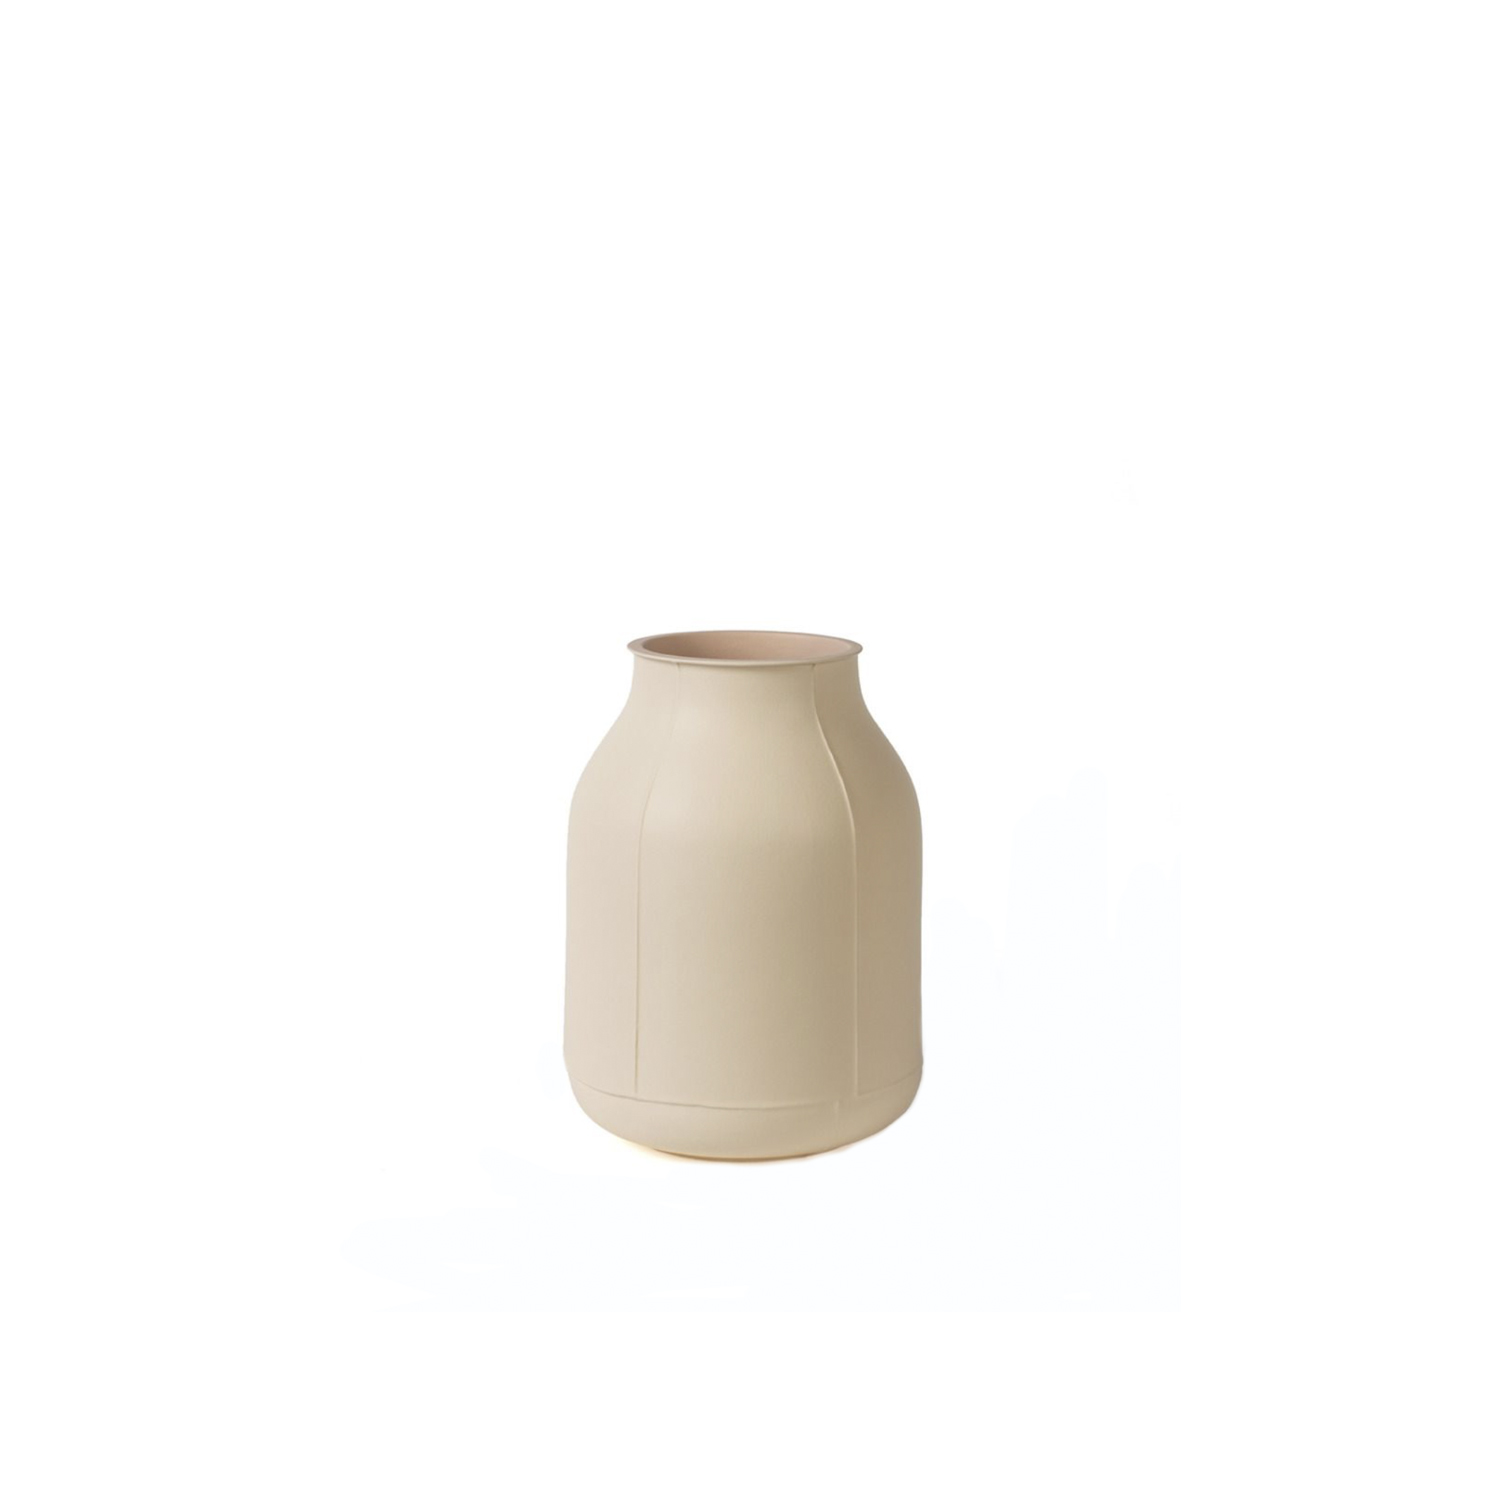 Large Barrel Vase - All products purchased on this site are unique pieces made ad hoc by our craftsmen. | Matter of Stuff